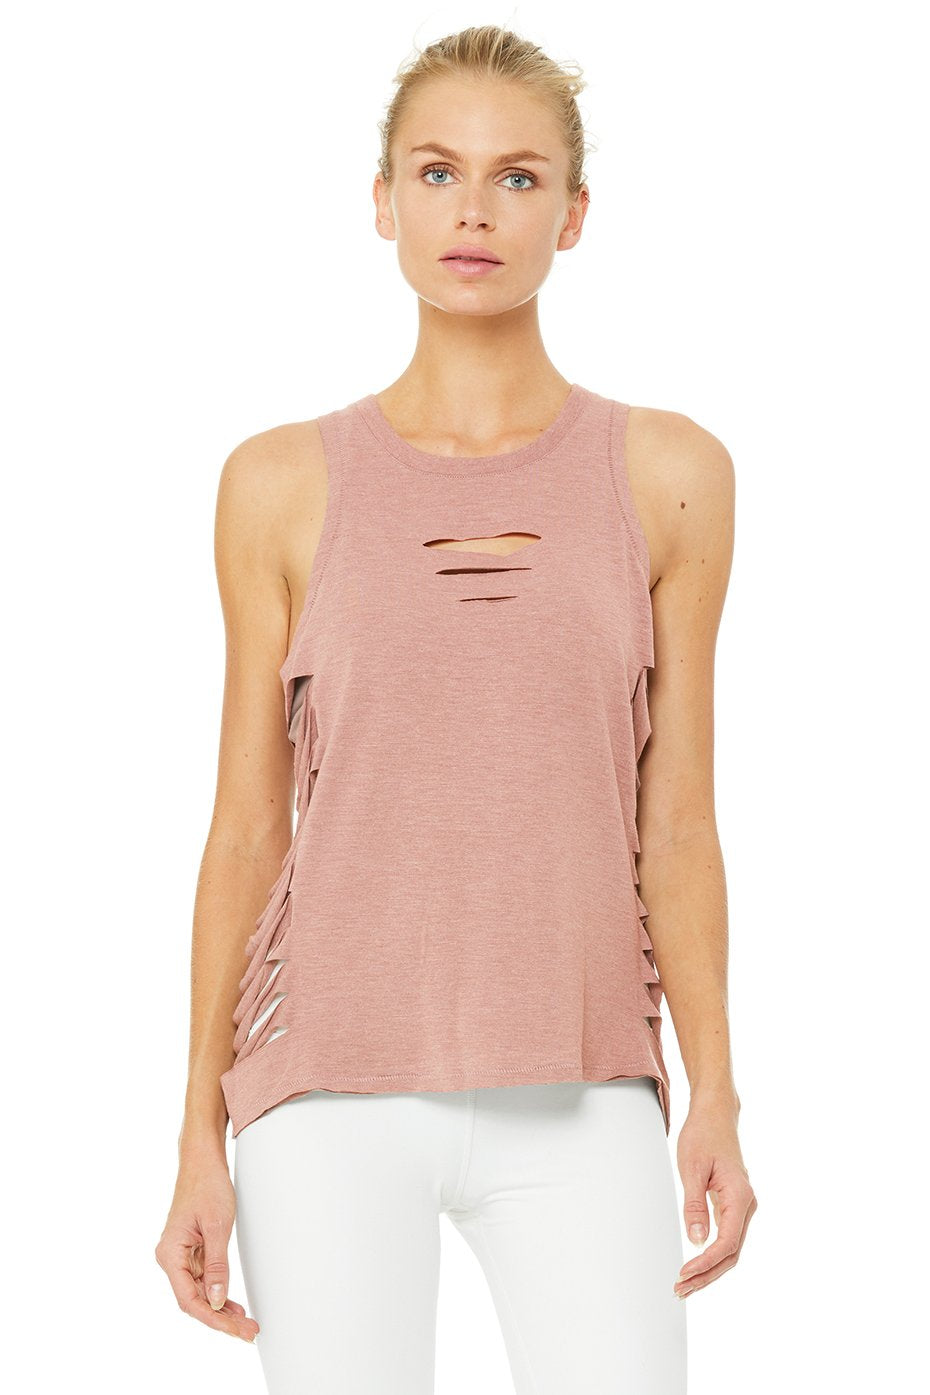 Alo Yoga Cut It Out Long Tank - Rosewater Heather